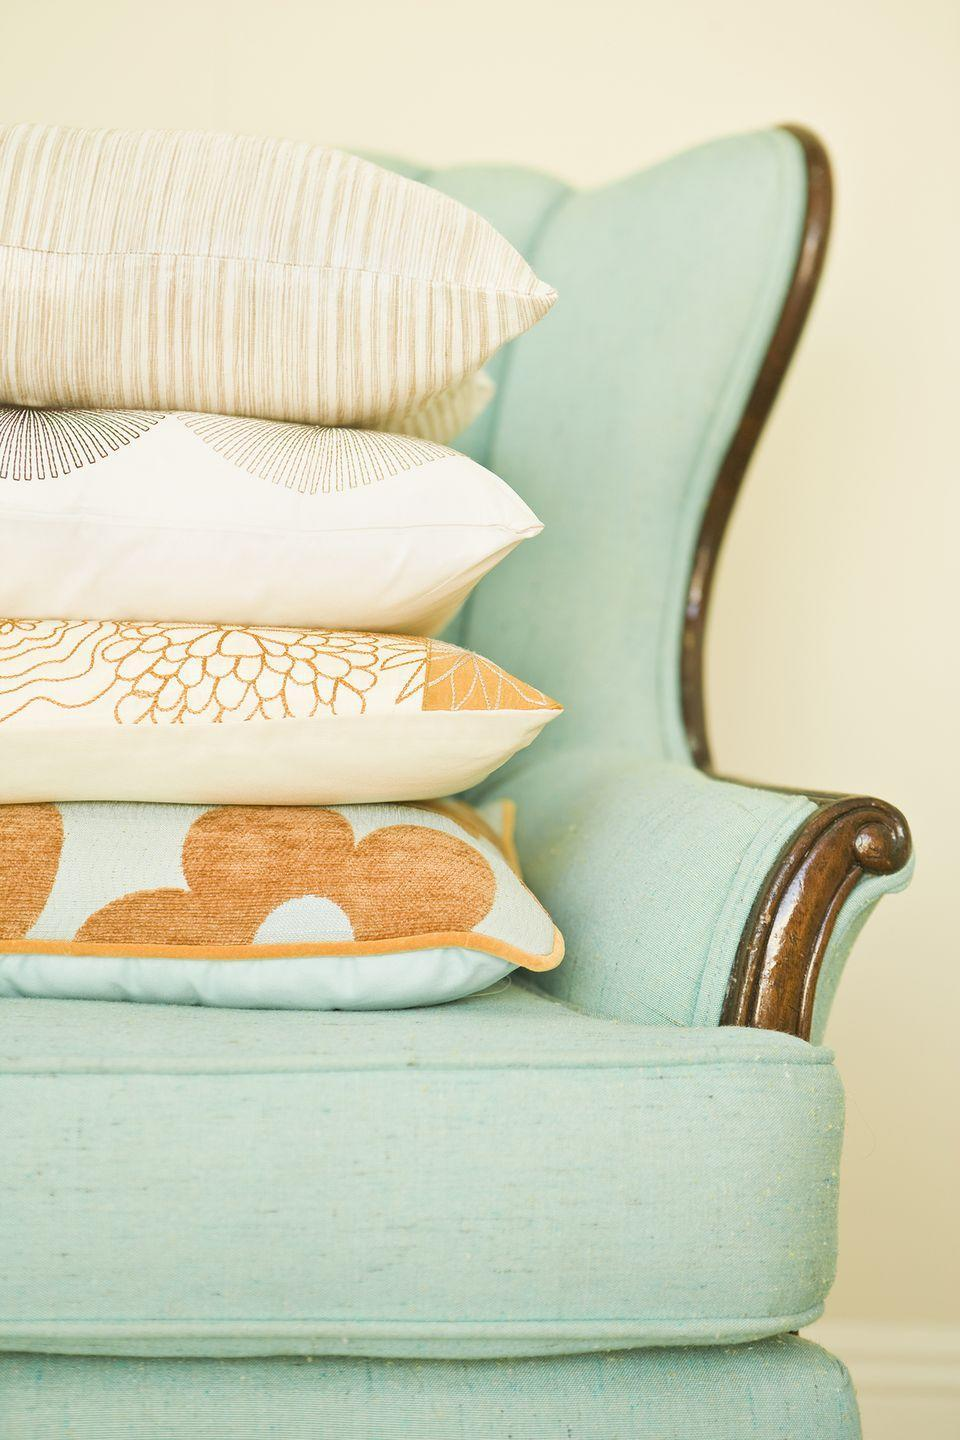 """<p>Bringing home any sort of used textile or item covered with fabric puts you at risk for a bed bug infestation. In fact, bed bugs can survive up to one year in upholstered pieces, according to the <a href=""""http://pods.dasnr.okstate.edu/docushare/dsweb/Get/Document-9913/T-4421web.pdf"""" rel=""""nofollow noopener"""" target=""""_blank"""" data-ylk=""""slk:Division of Agricultural Sciences and Natural Resources at Oklahoma State University"""" class=""""link rapid-noclick-resp"""">Division of Agricultural Sciences and Natural Resources at Oklahoma State University</a>. And with cute throw pillows available for just $10-$20 on <a href=""""https://www.target.com/s?searchTerm=throw+pillows"""" rel=""""nofollow noopener"""" target=""""_blank"""" data-ylk=""""slk:Target.com"""" class=""""link rapid-noclick-resp"""">Target.com</a> and <a href=""""https://www.amazon.com/Throw-Pillows-Accent-Decorative-Inserts-Covers/s?tag=syn-yahoo-20&ascsubtag=%5Bartid%7C10063.g.36459940%5Bsrc%7Cyahoo-us"""" rel=""""nofollow noopener"""" target=""""_blank"""" data-ylk=""""slk:Amazon.com"""" class=""""link rapid-noclick-resp"""">Amazon.com</a>, it's both affordable and wise to go for something new. </p>"""